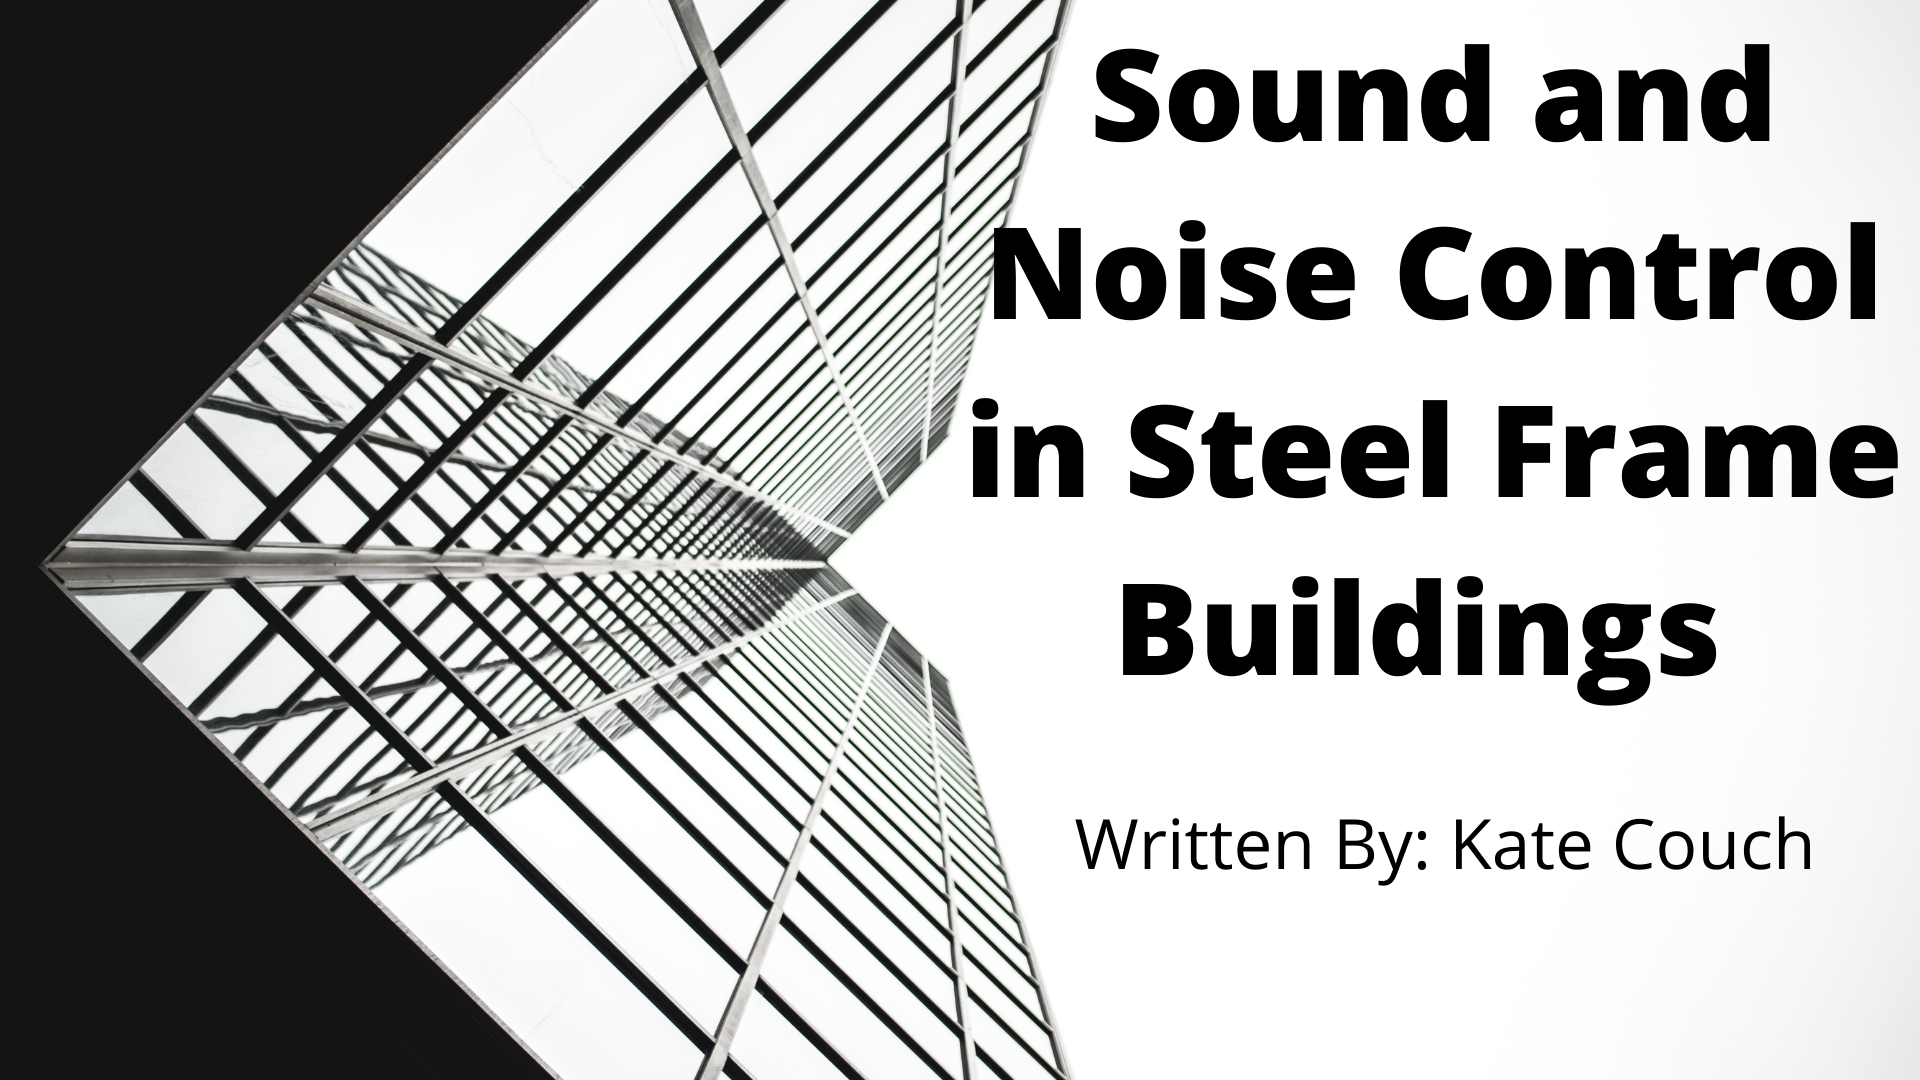 Sound-and-Noise-Control-in-Steel-Frame-Buildings.png